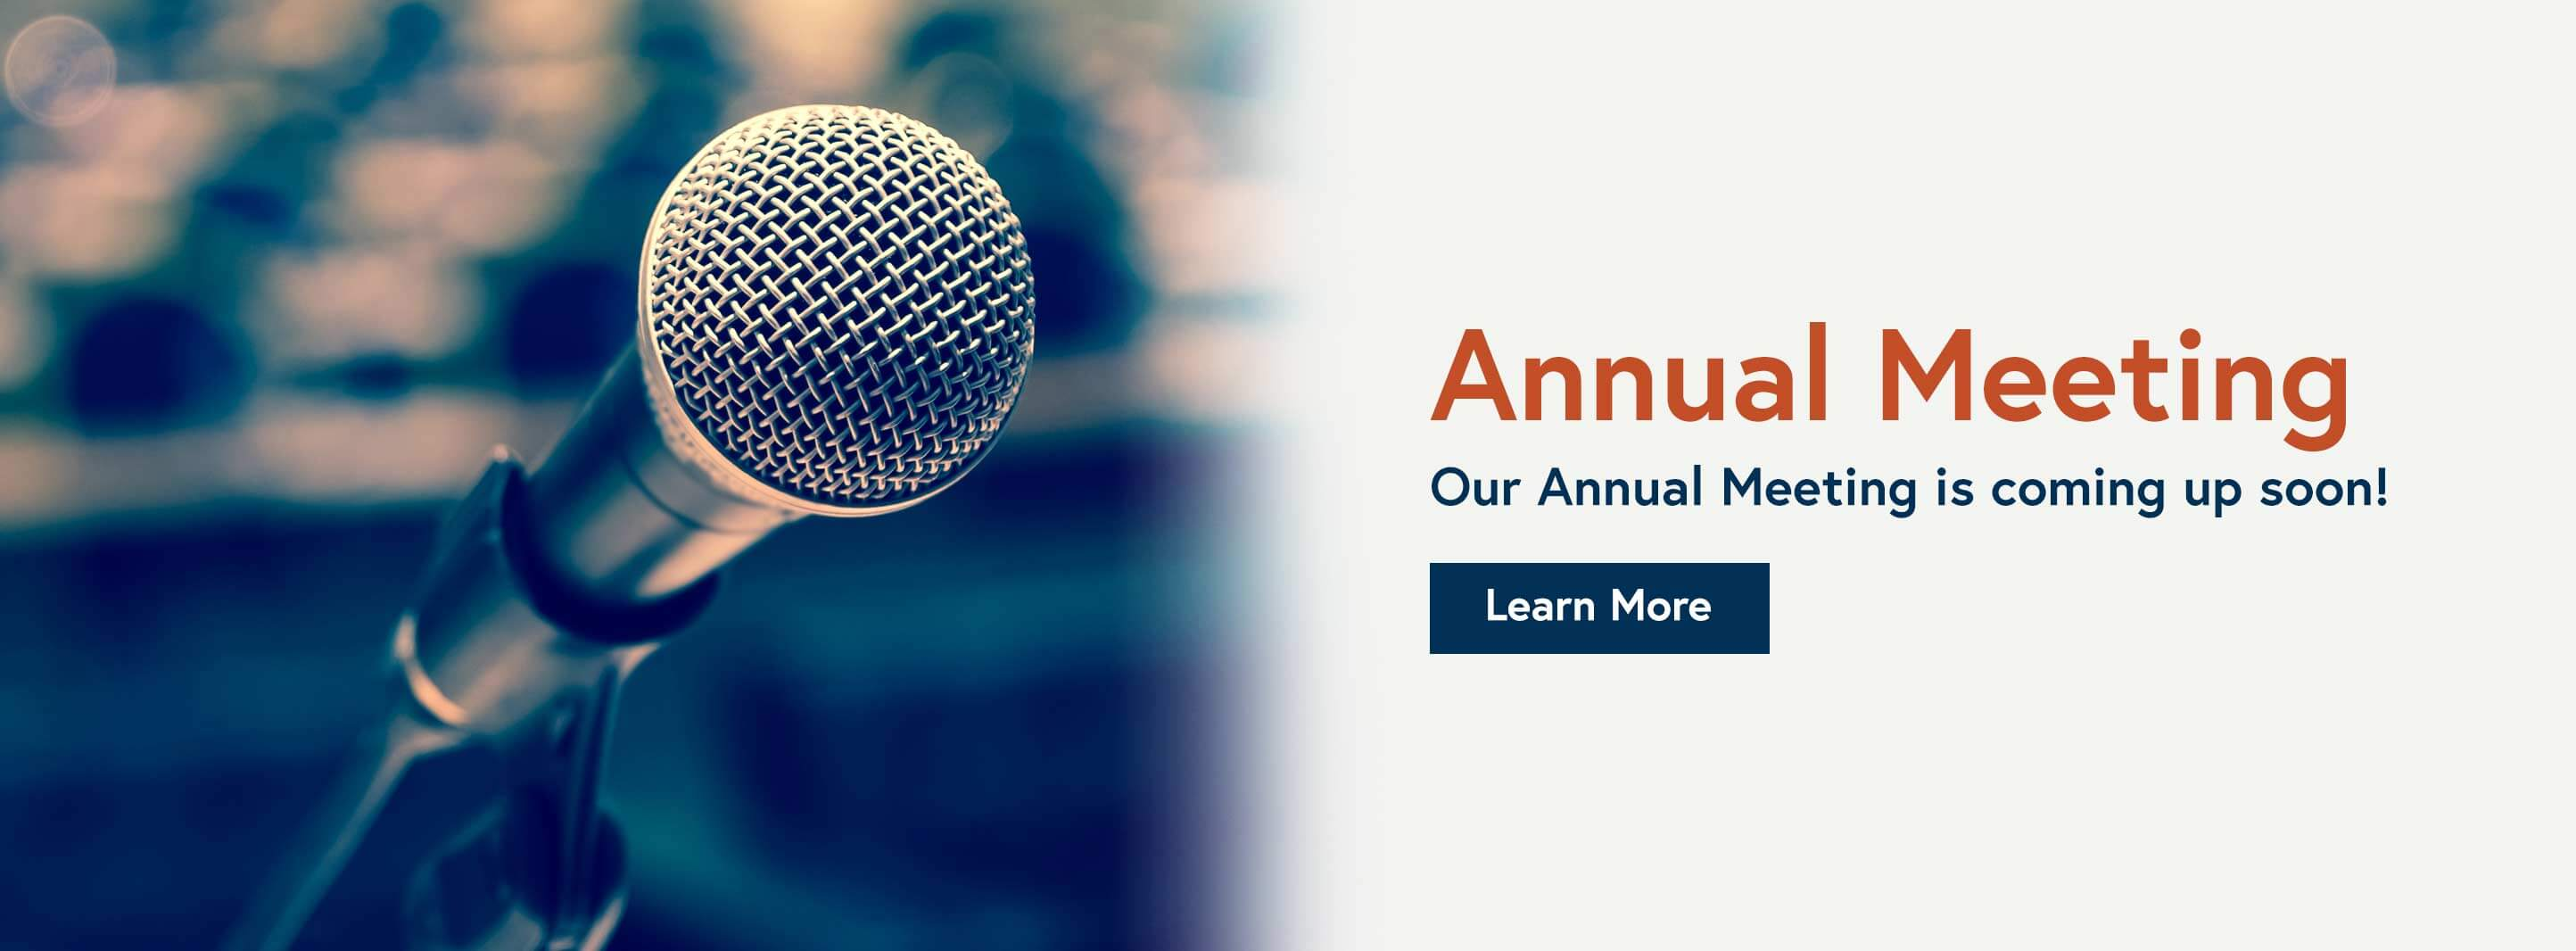 Annual Meeting - Our Annual Meeting is coming up soon!